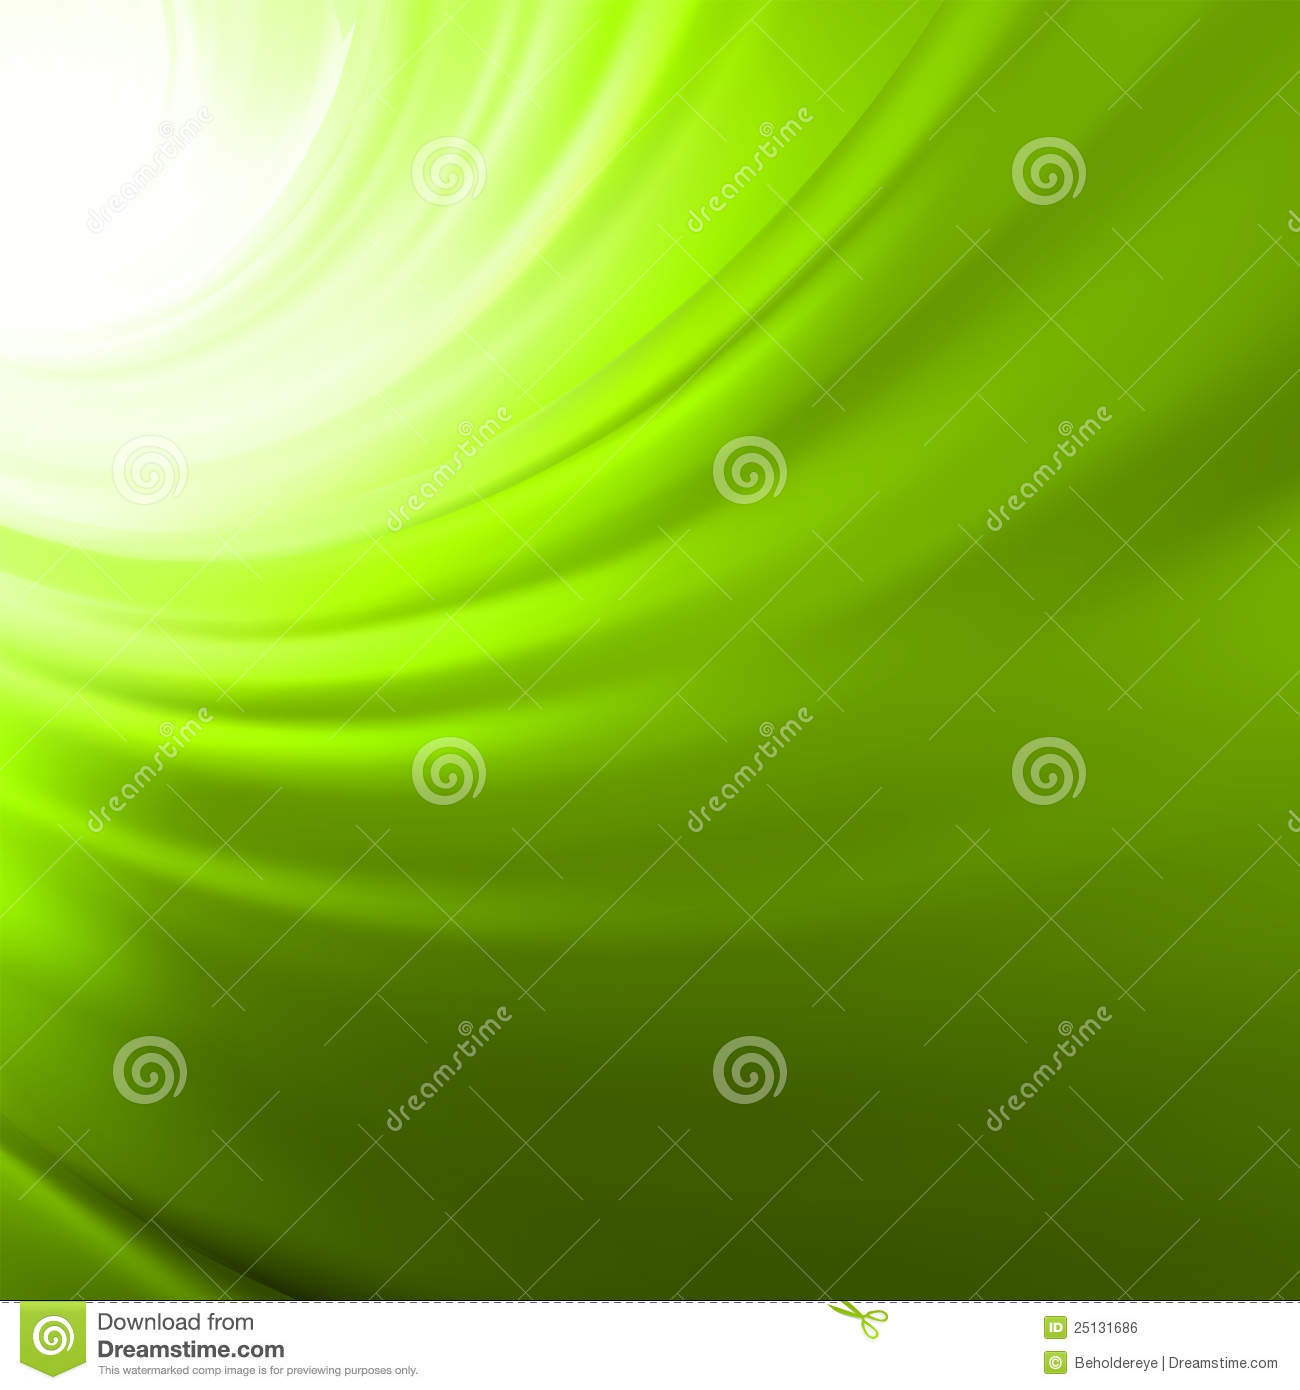 Twist background with green flow. EPS 8